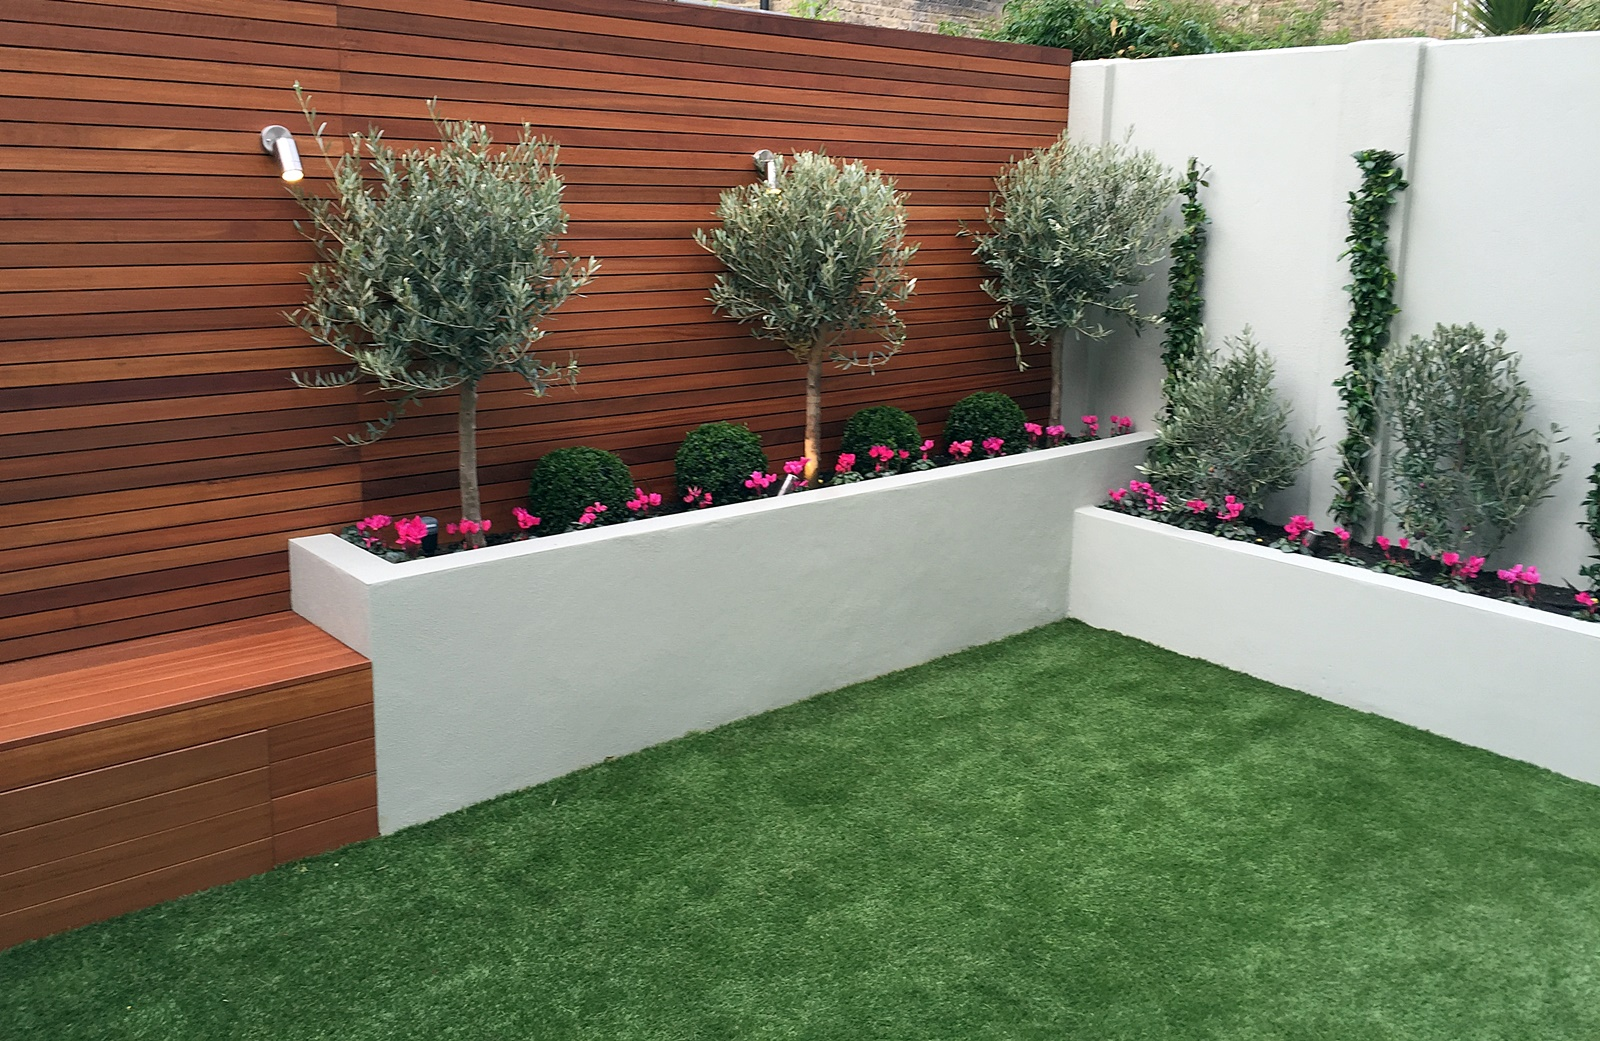 Designer london garden blog Modern front garden ideas uk